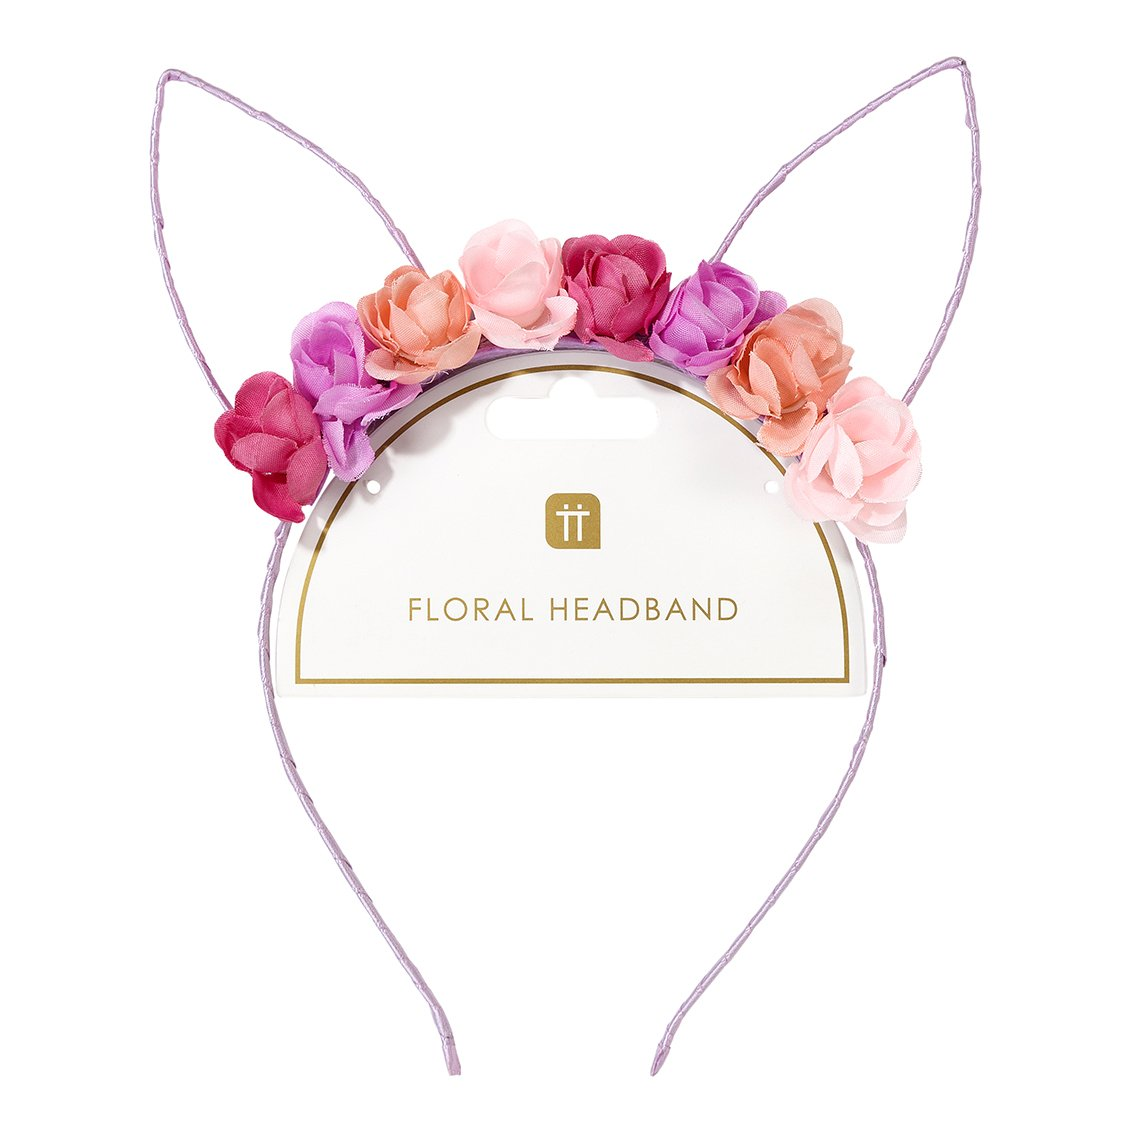 Bunny Ears Floral Headband - Talking Tables